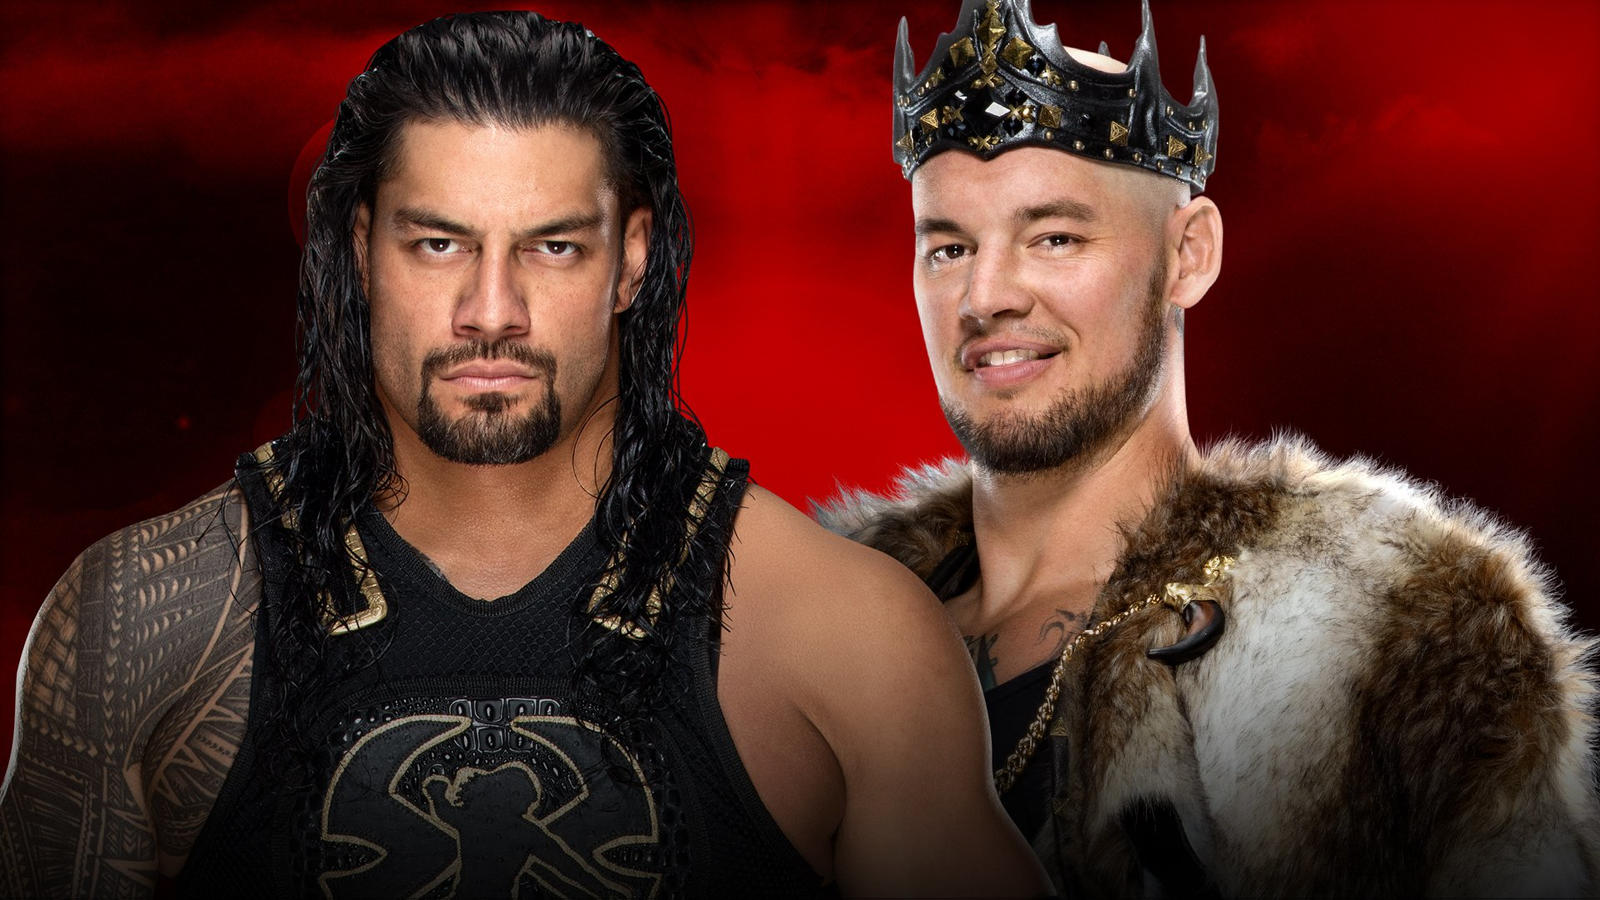 Royal Rumble 2020 Match Preview: Roman Reigns v. King Corbin Falls Count Anywhere Match